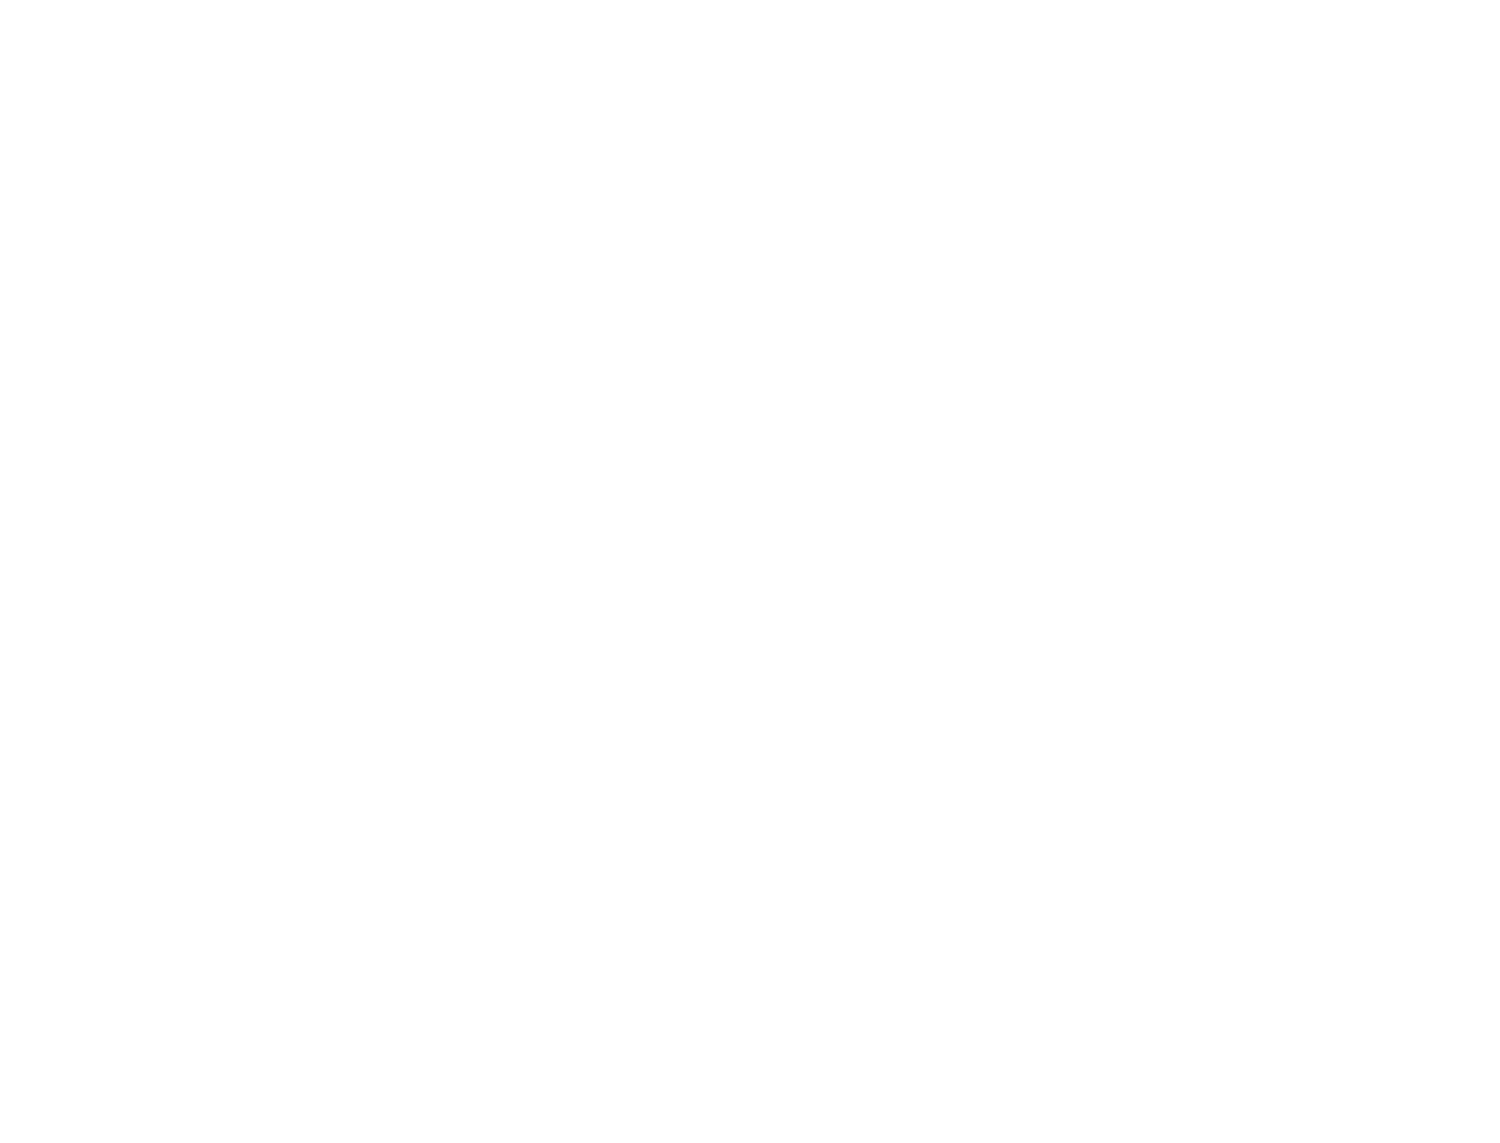 David in the Dark